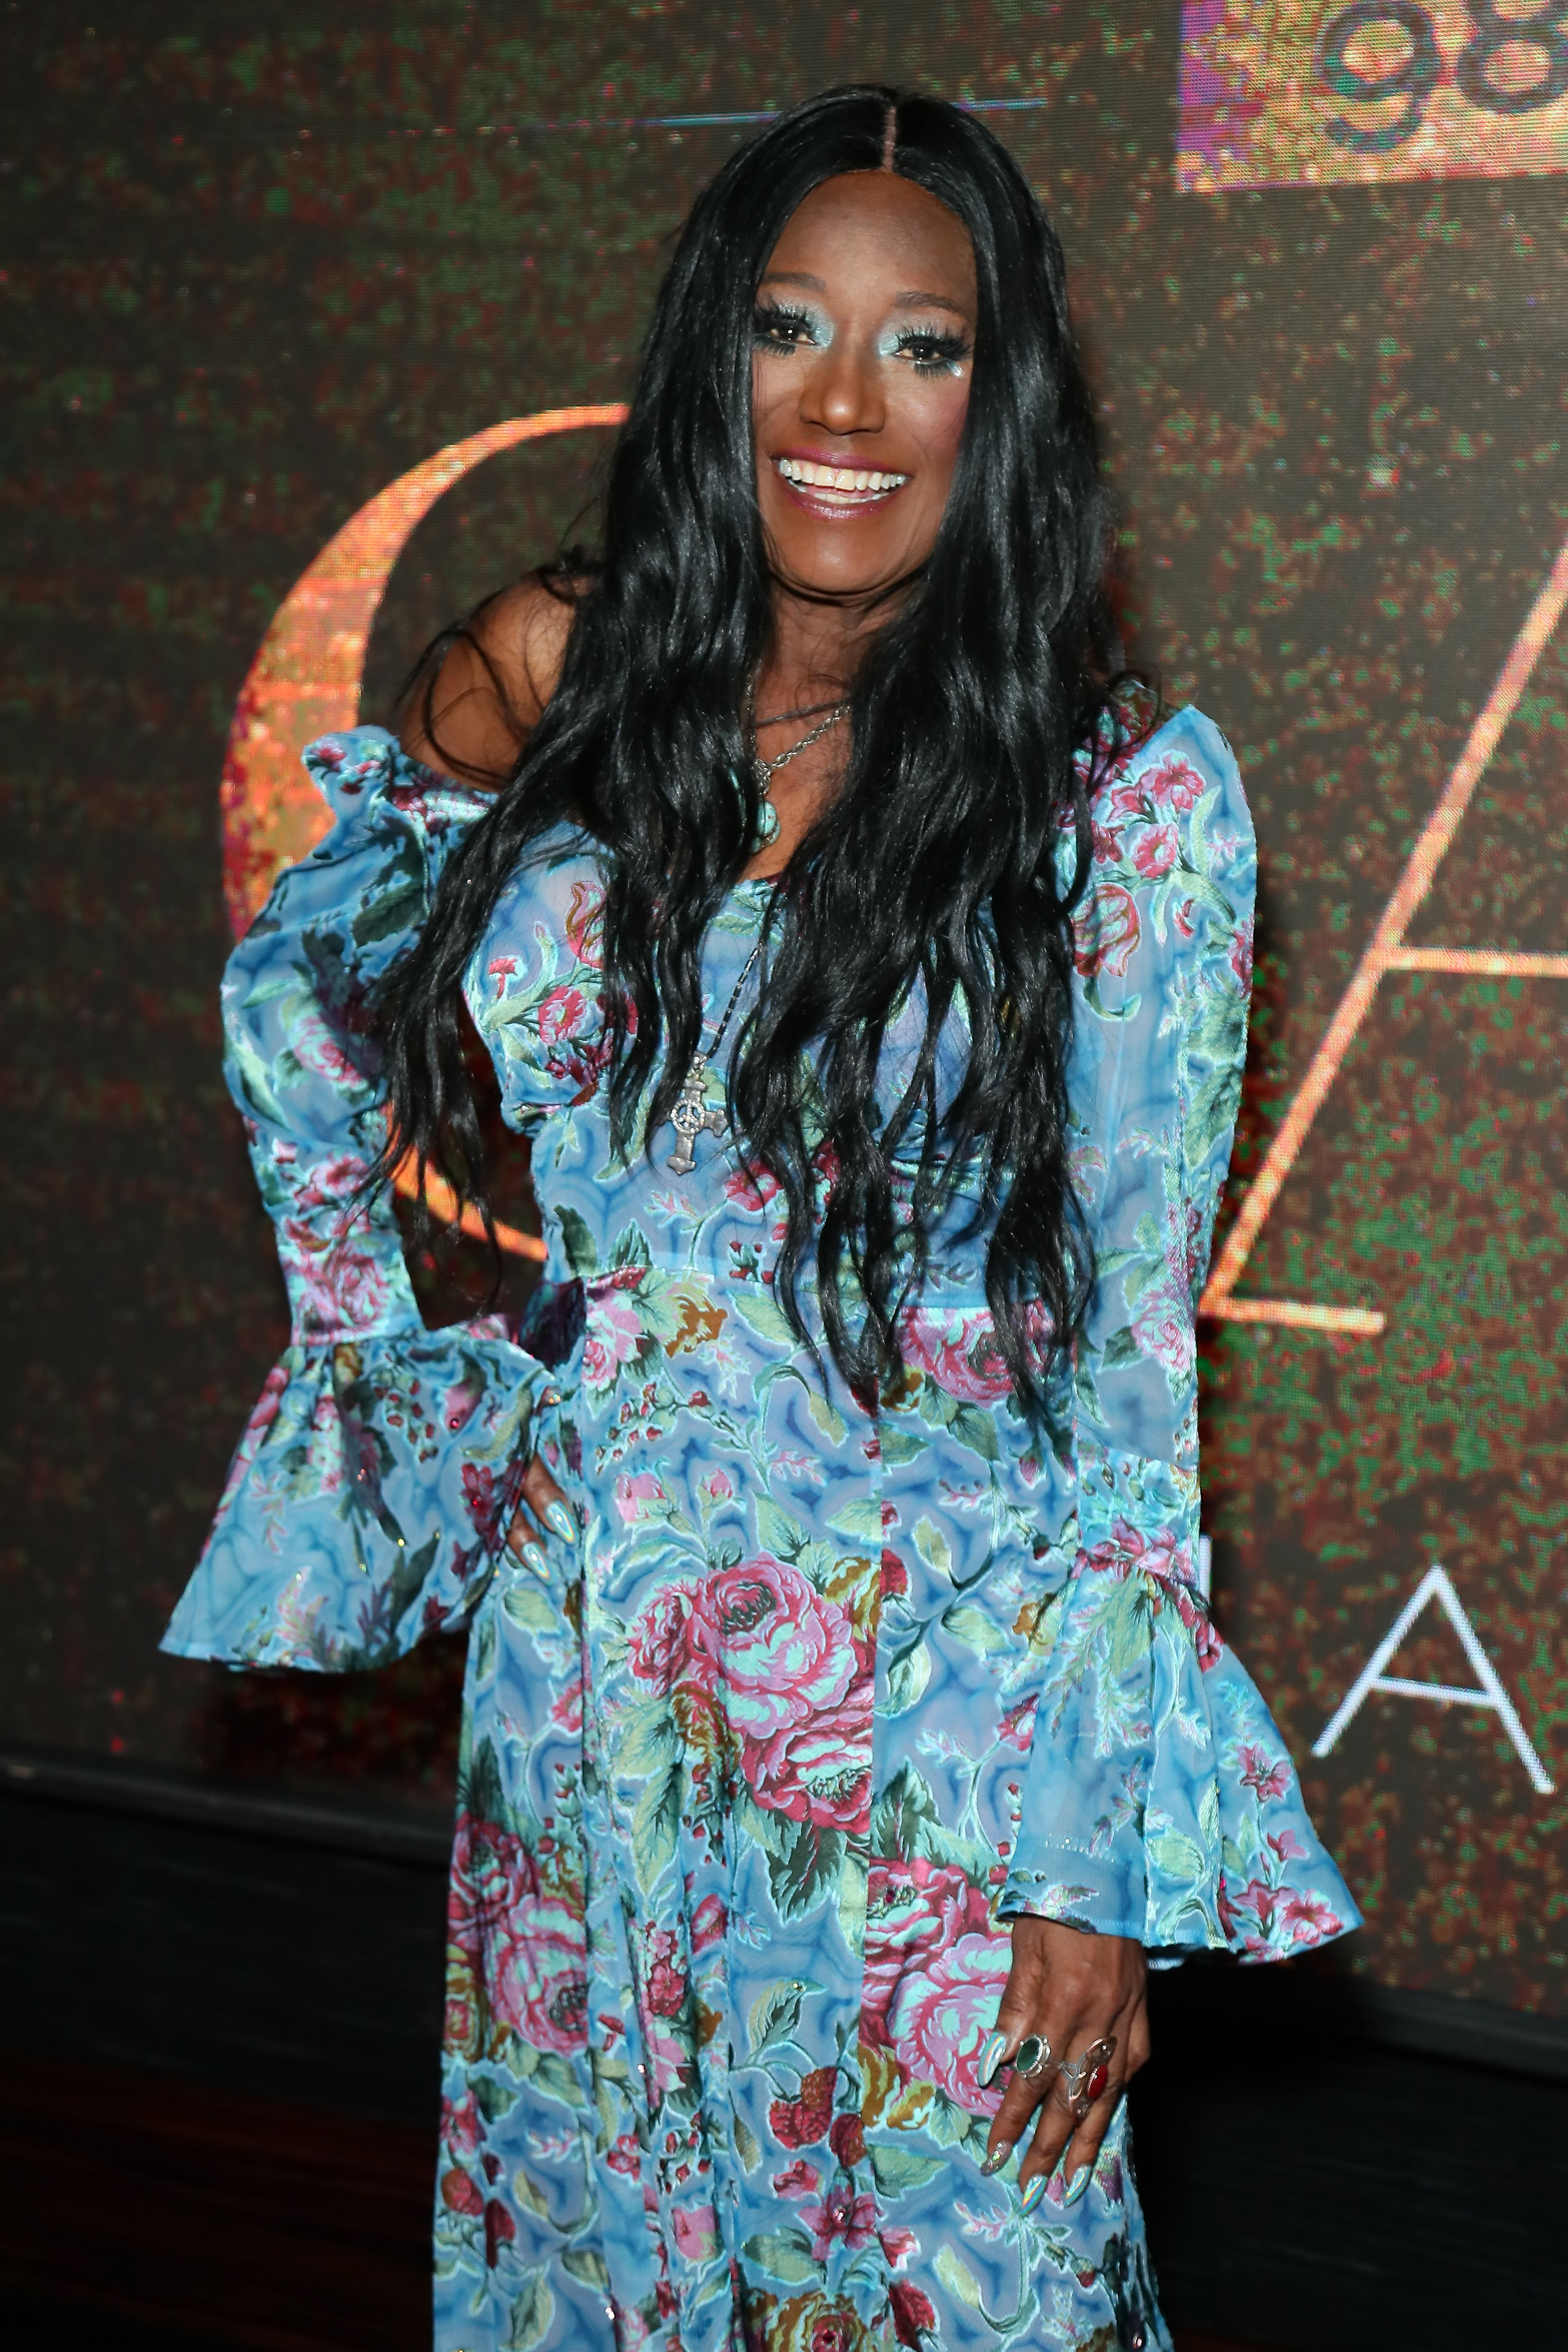 Late Bonnie Pointer at the Hollywood Chamber of Commerce 98th Annual Board Installation And Lifetime Achievement Awards Gala at Avalon Hollywood on April 10, 2019 in Los Angeles, California.  Photo: Getty Images